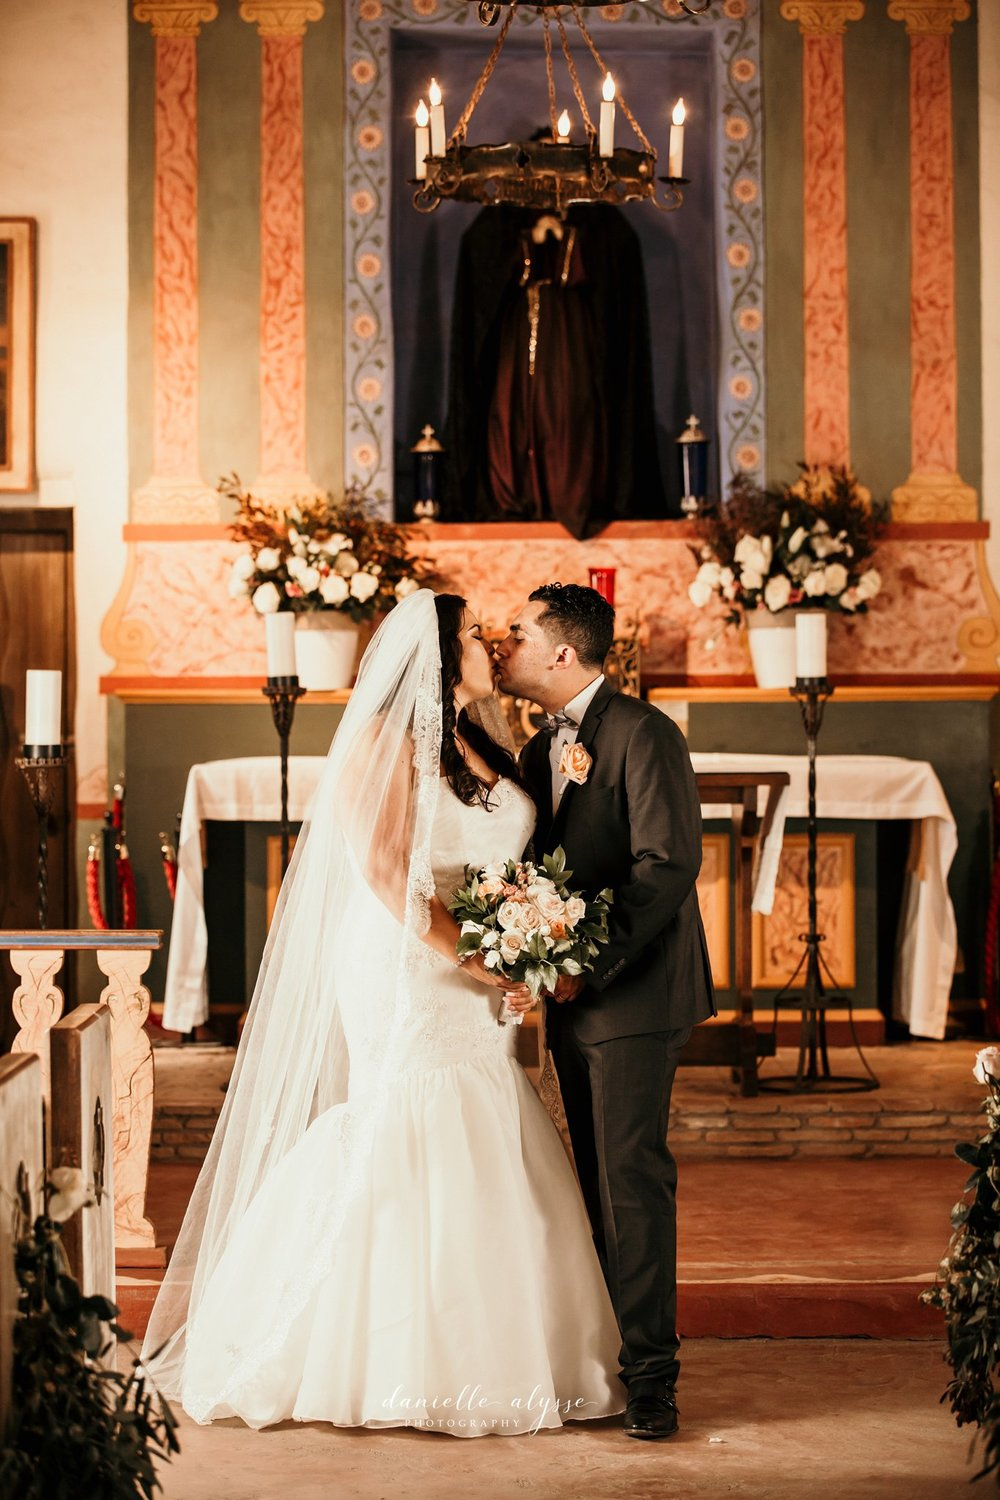 180630_wedding_lily_ryan_mission_soledad_california_danielle_alysse_photography_blog_611_WEB.jpg